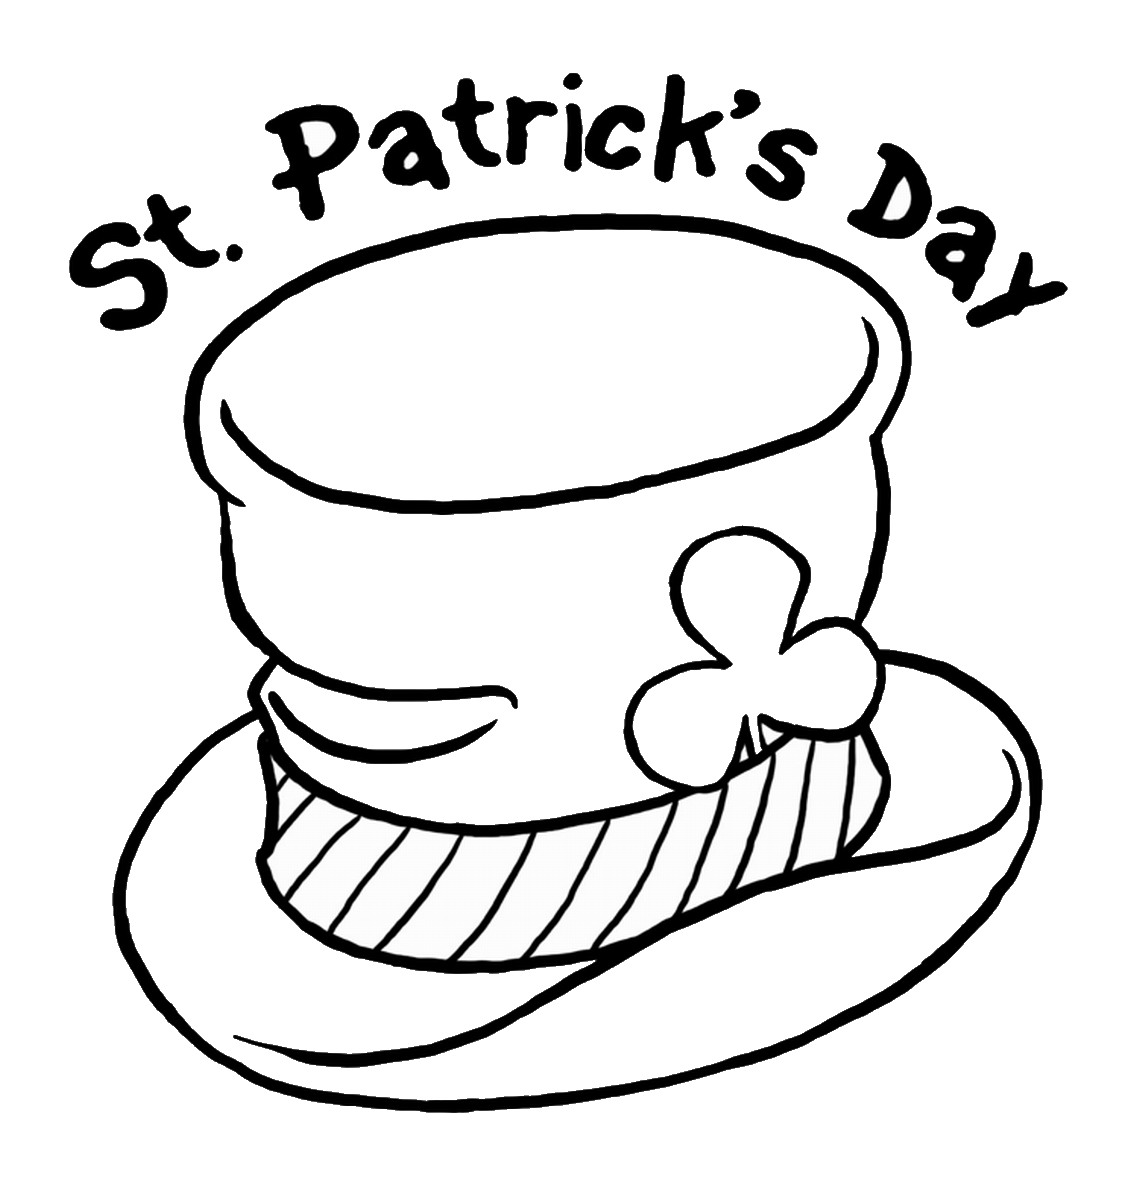 saint patricks day coloring pages - photo#15